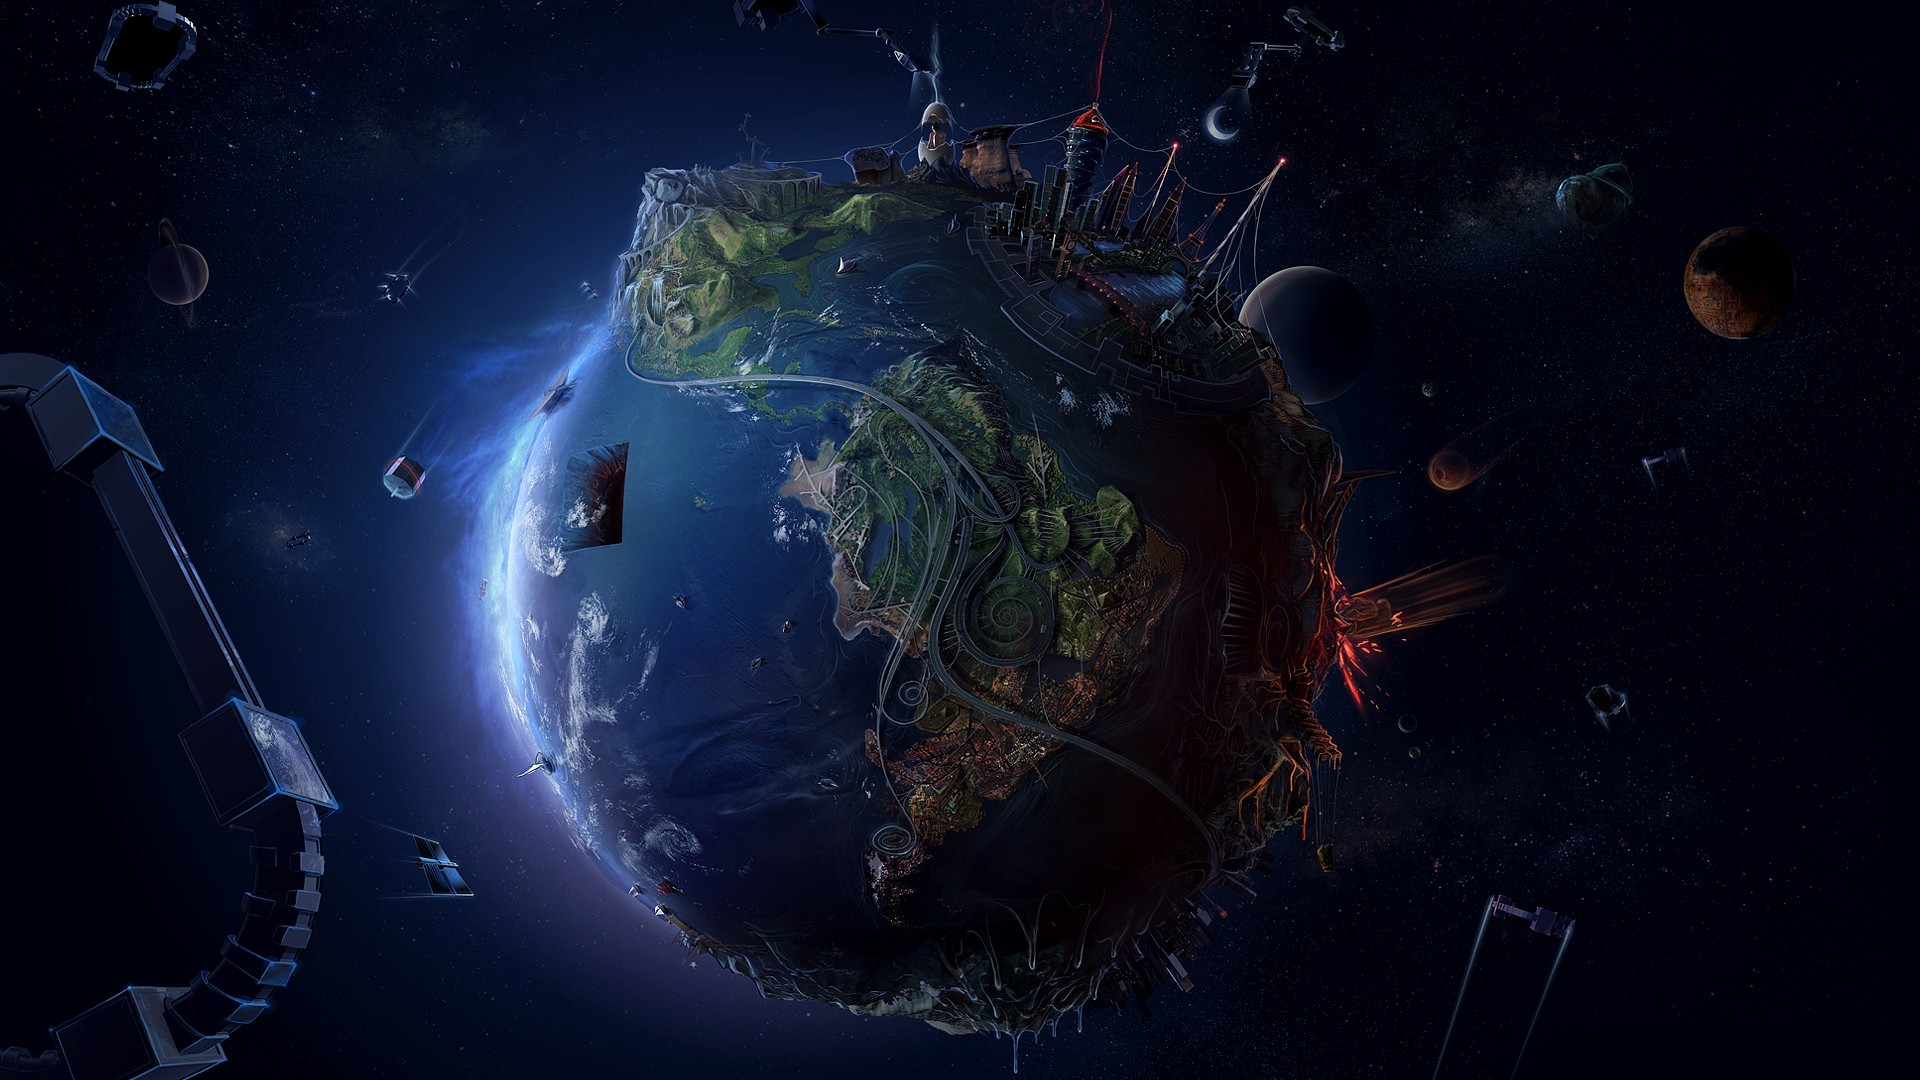 Cool Pictures Earth Space HD Wallpaper of Galaxy – hdwallpaper2013.com